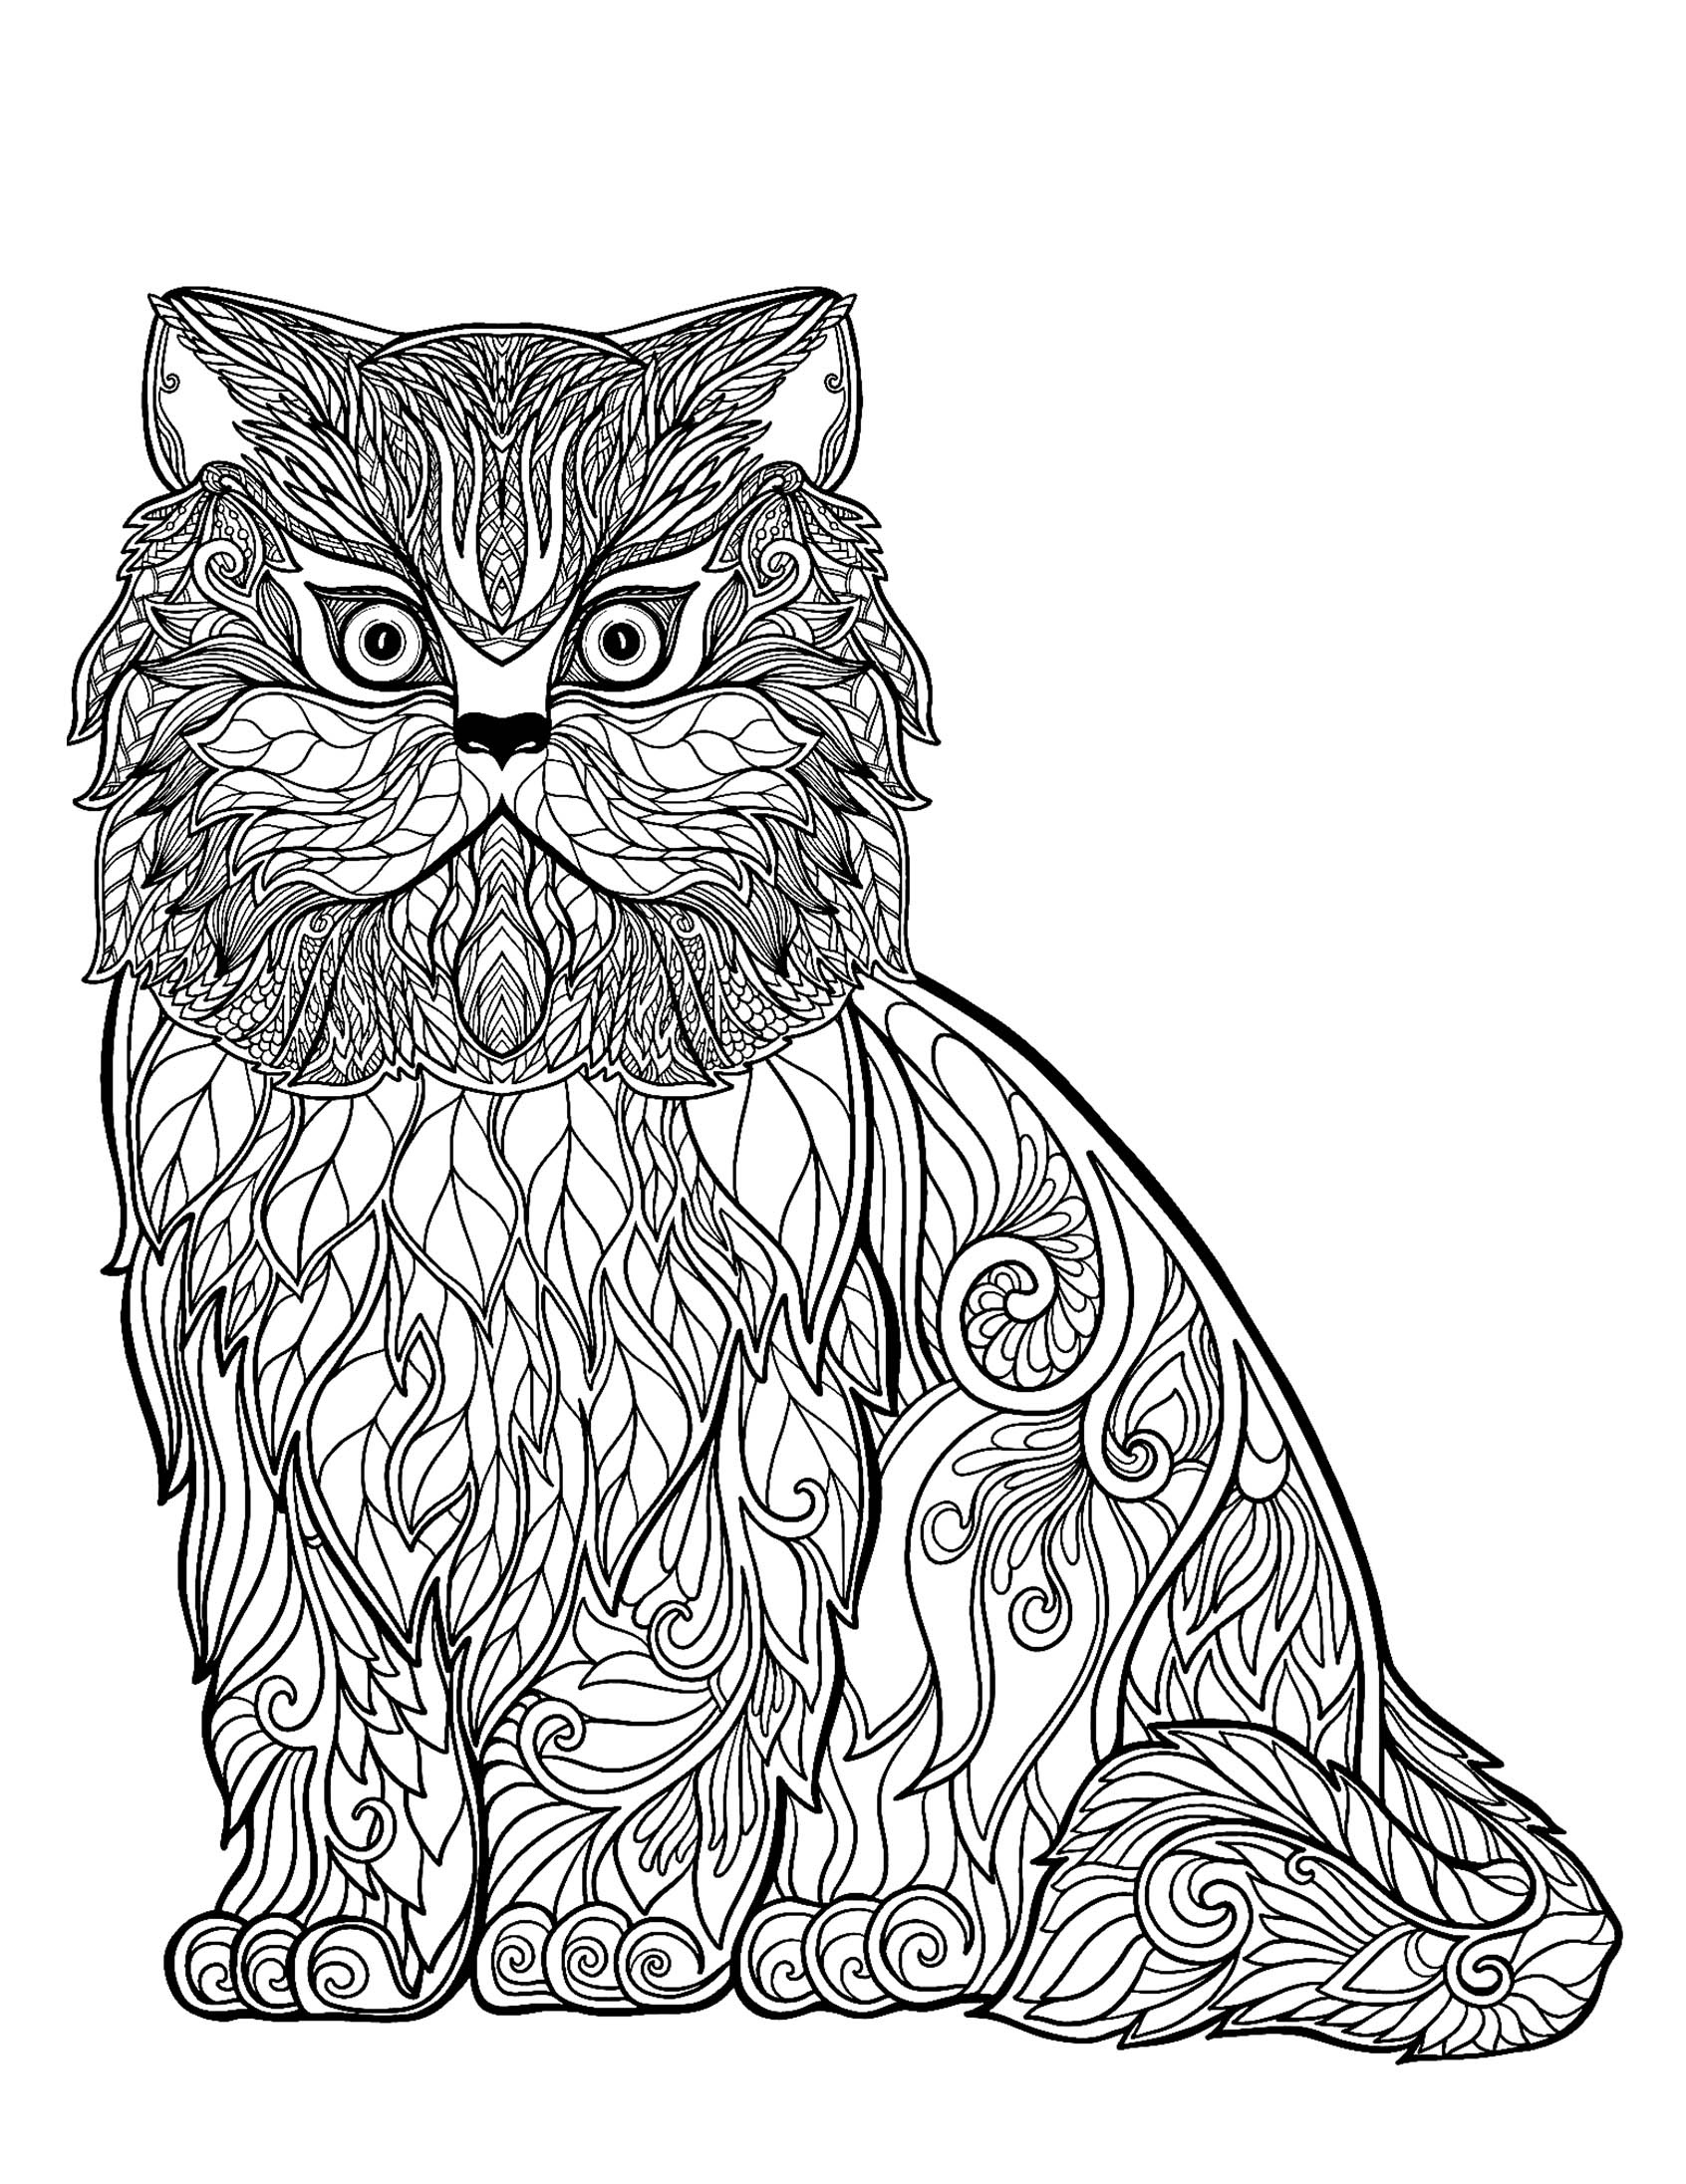 cat coloring pictures cute cat coloring pages to download and print for free pictures coloring cat